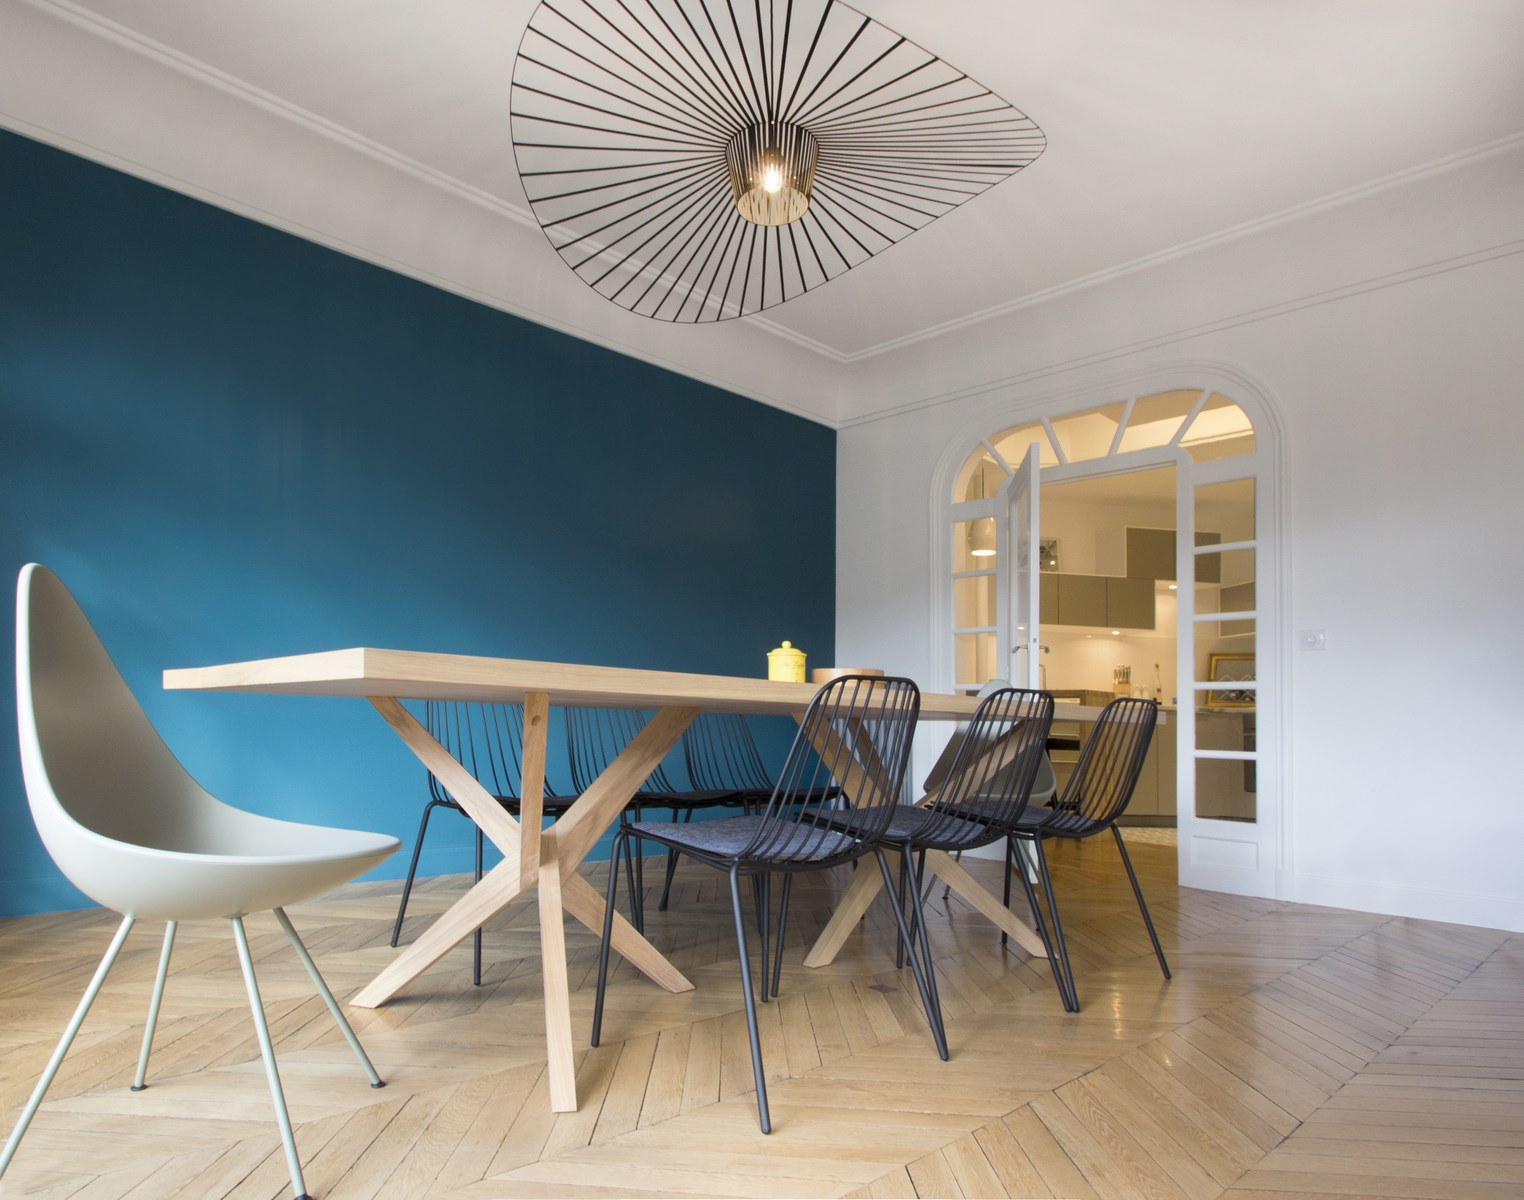 Journees architecture a vivre selection for Table salle a manger design paris